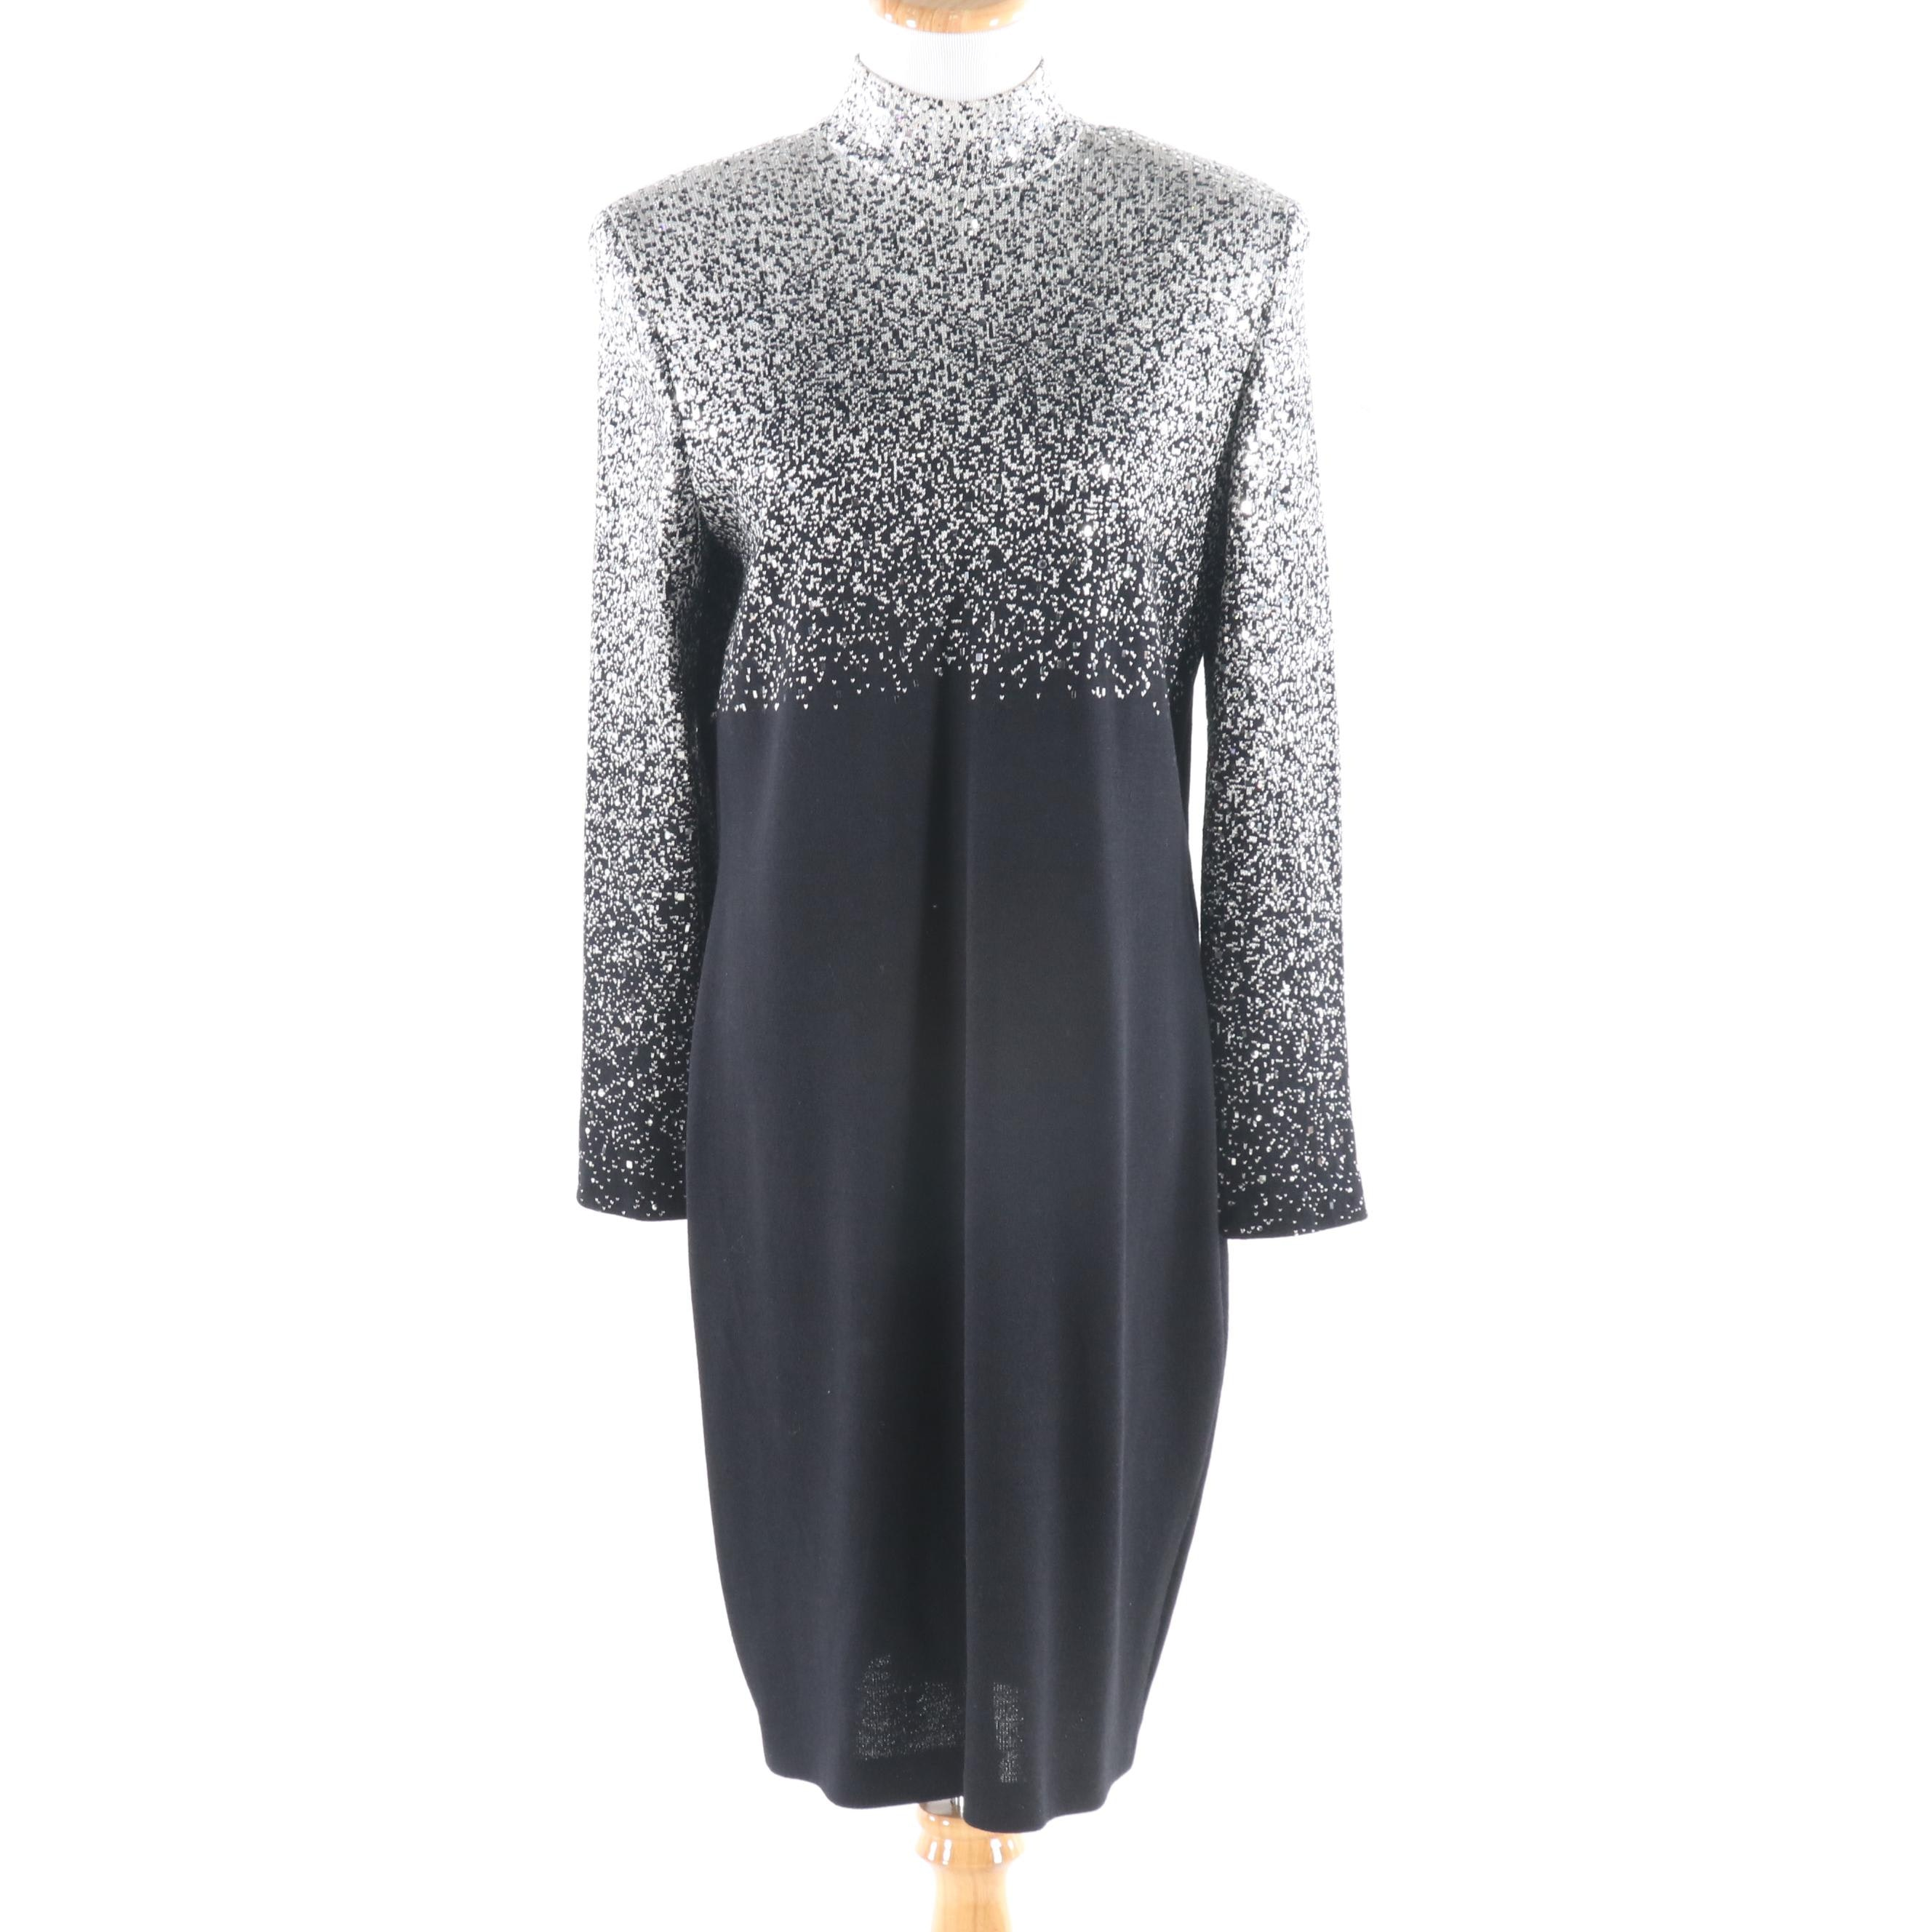 St. John Evening Embellished Mock Turtleneck Knit Cocktail Dress